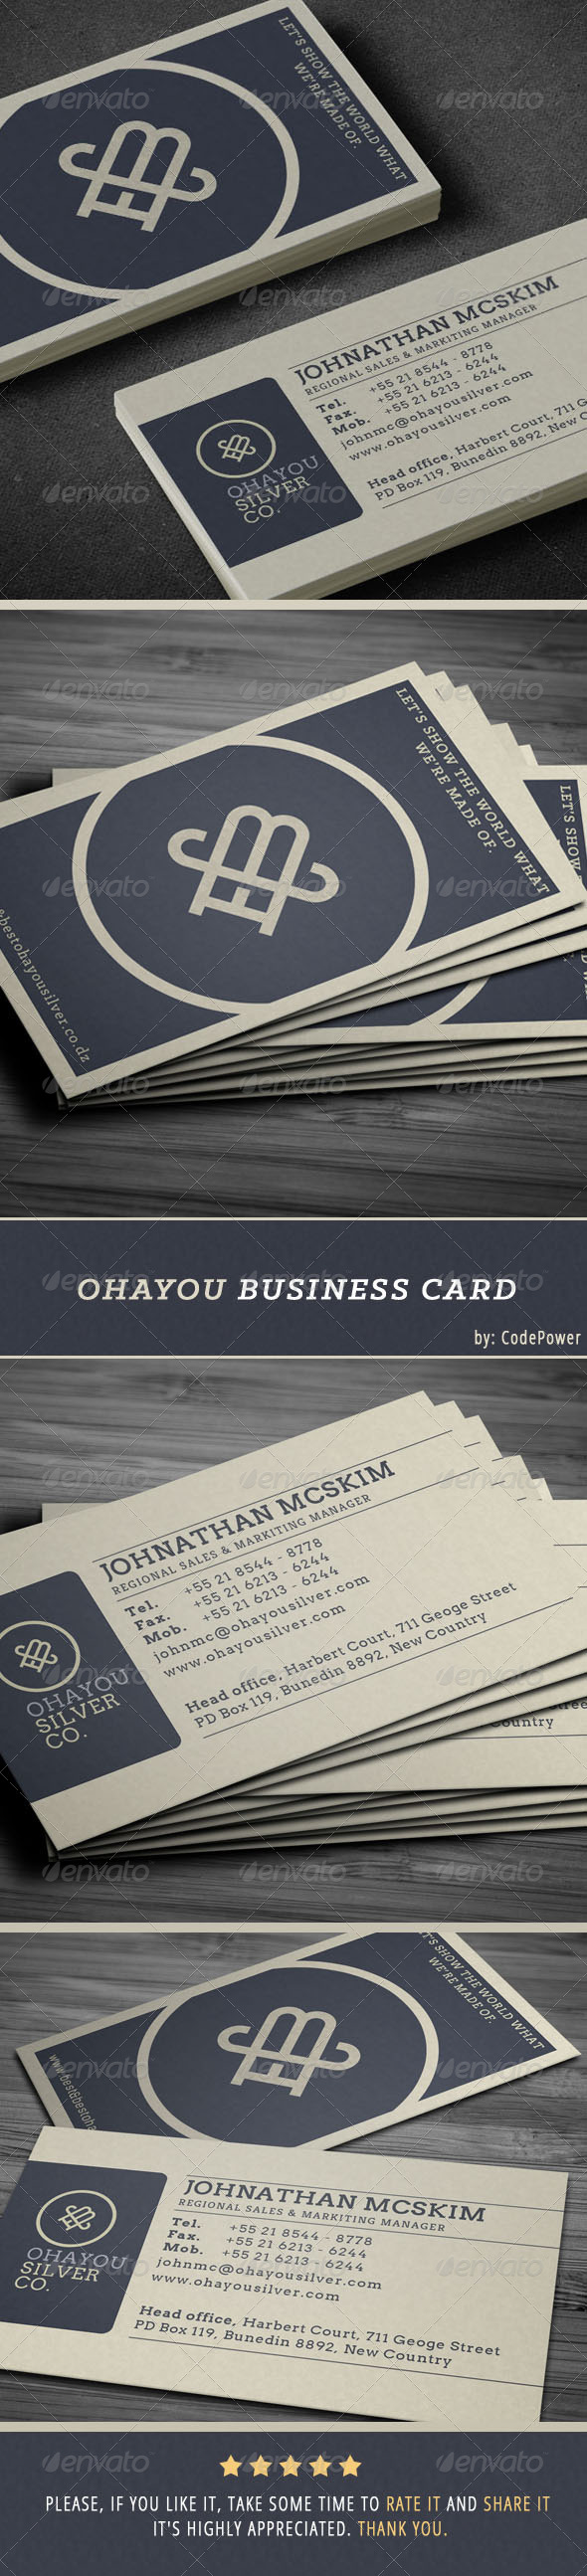 Ohayou Business Card - Corporate Business Cards